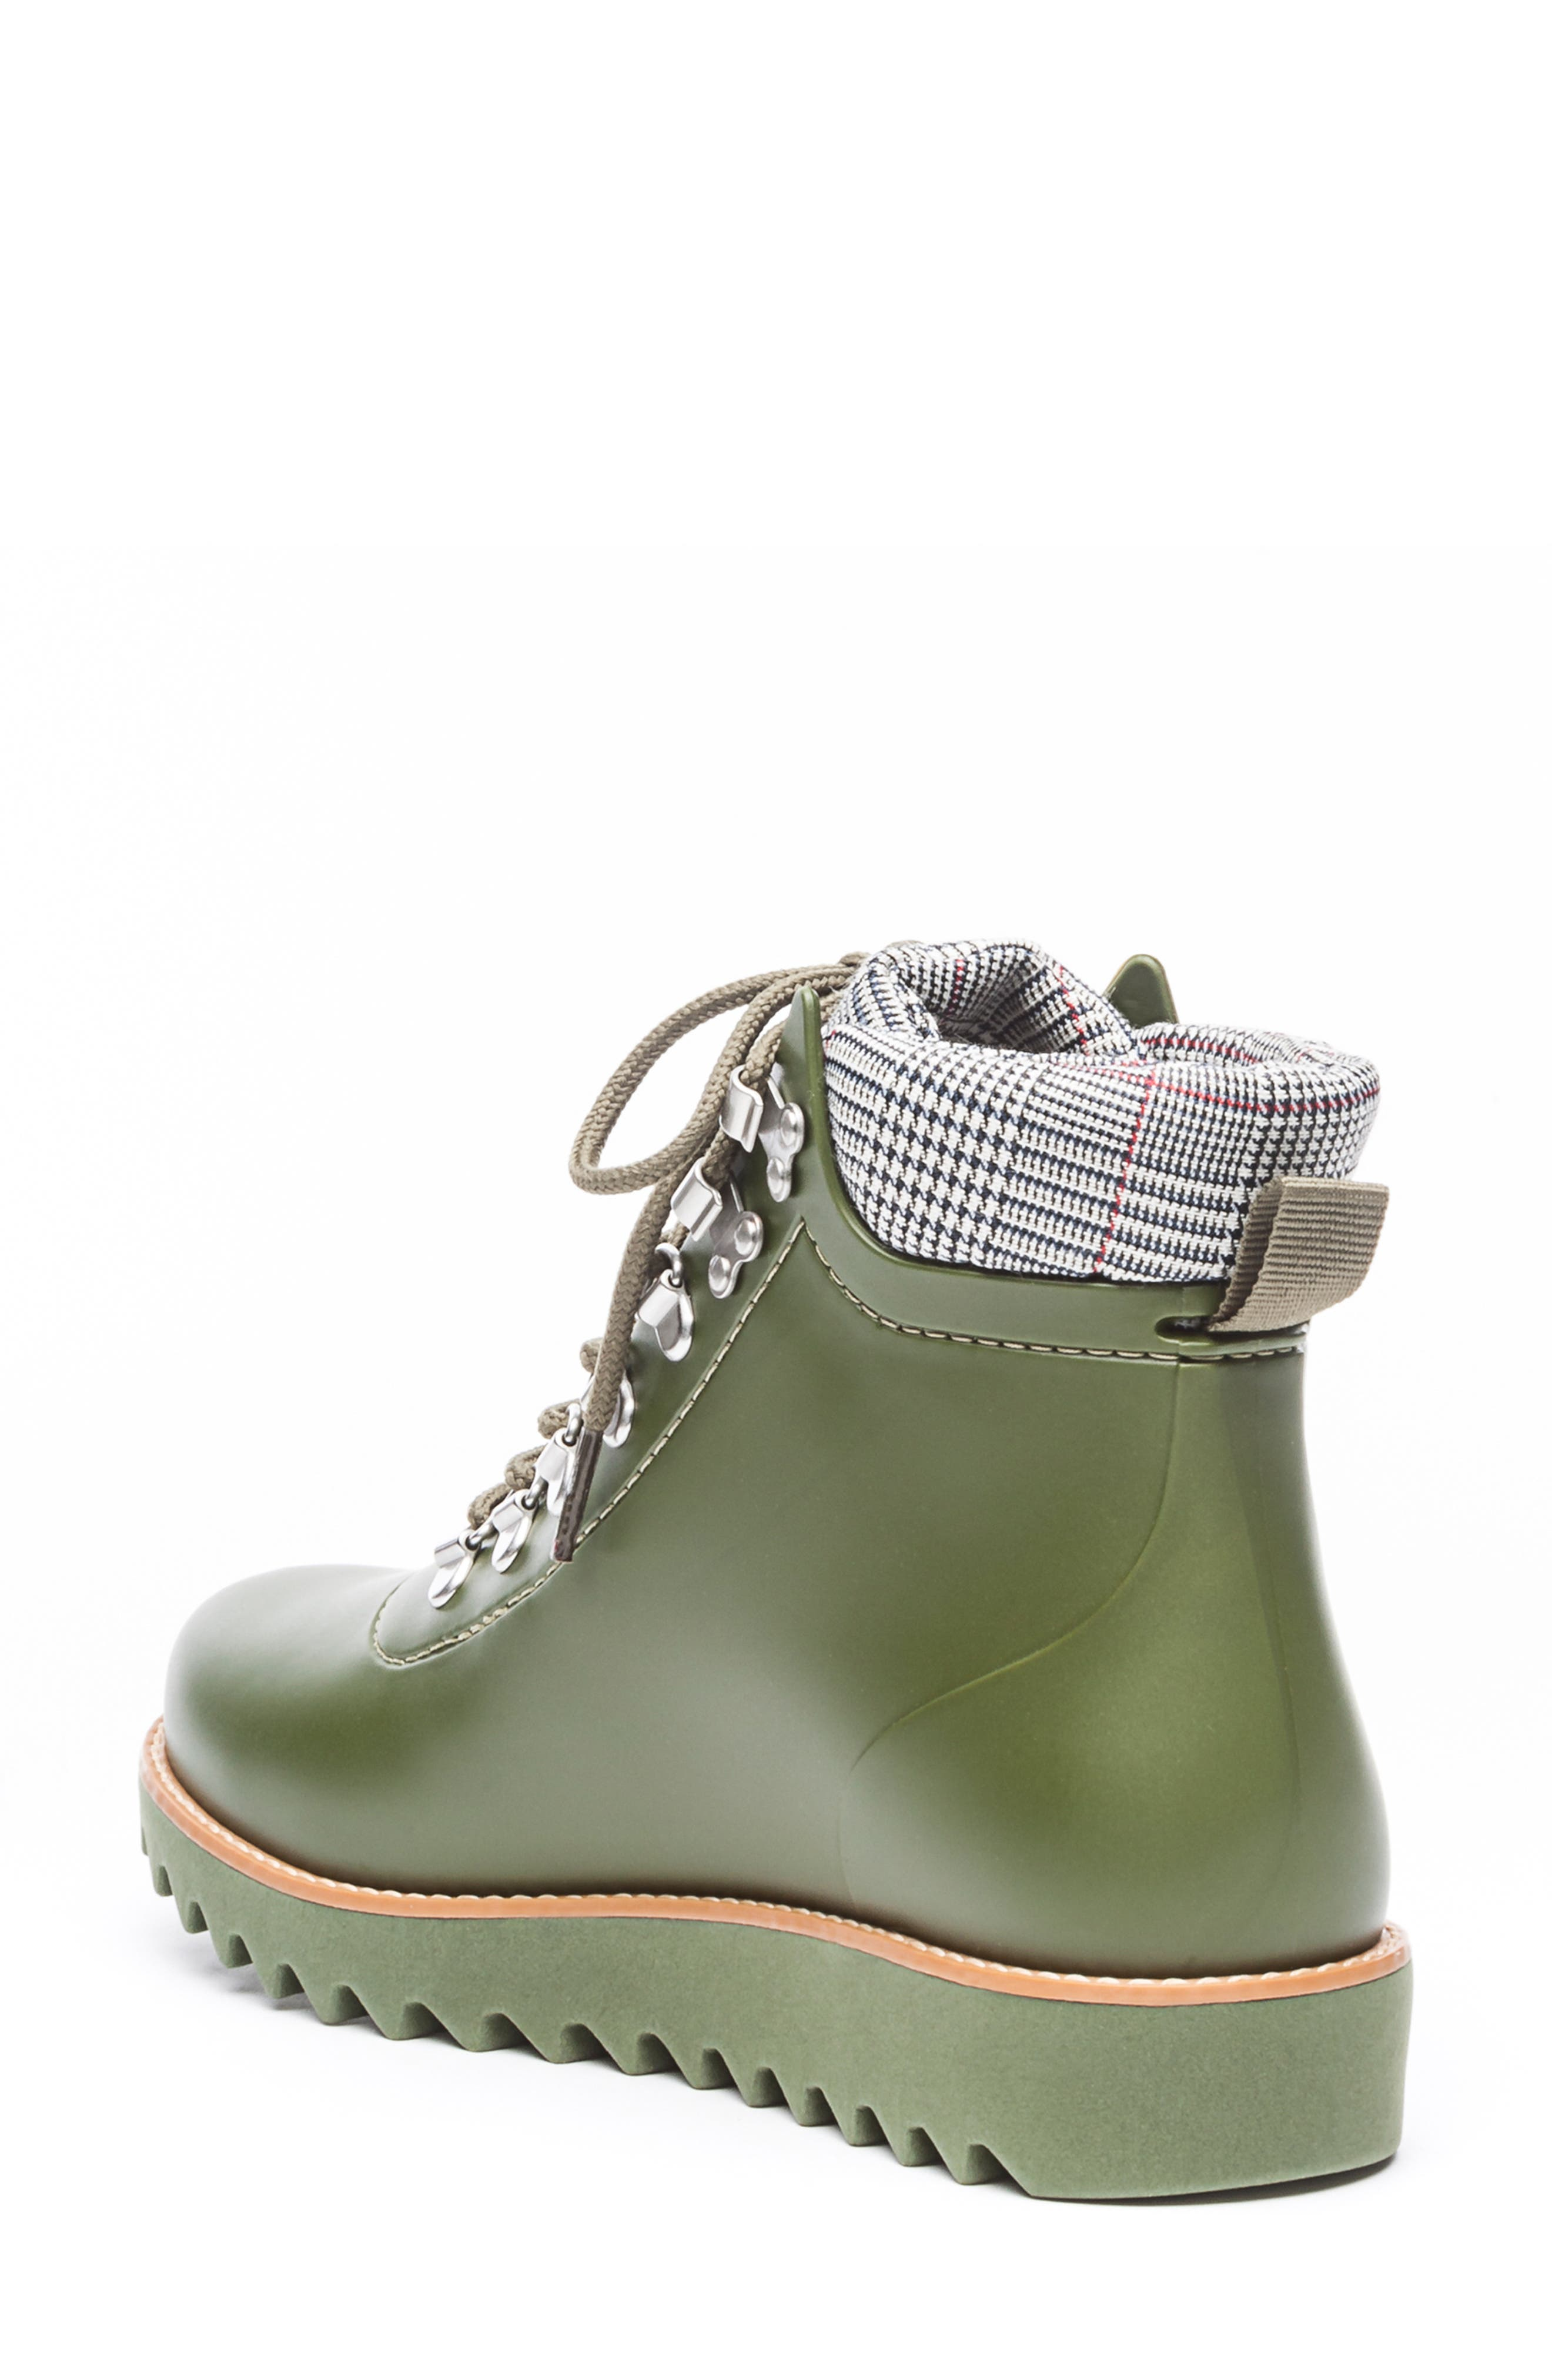 BERNARDO, Winnie Waterproof Rain Bootie, Alternate thumbnail 2, color, MILITARY GREEN